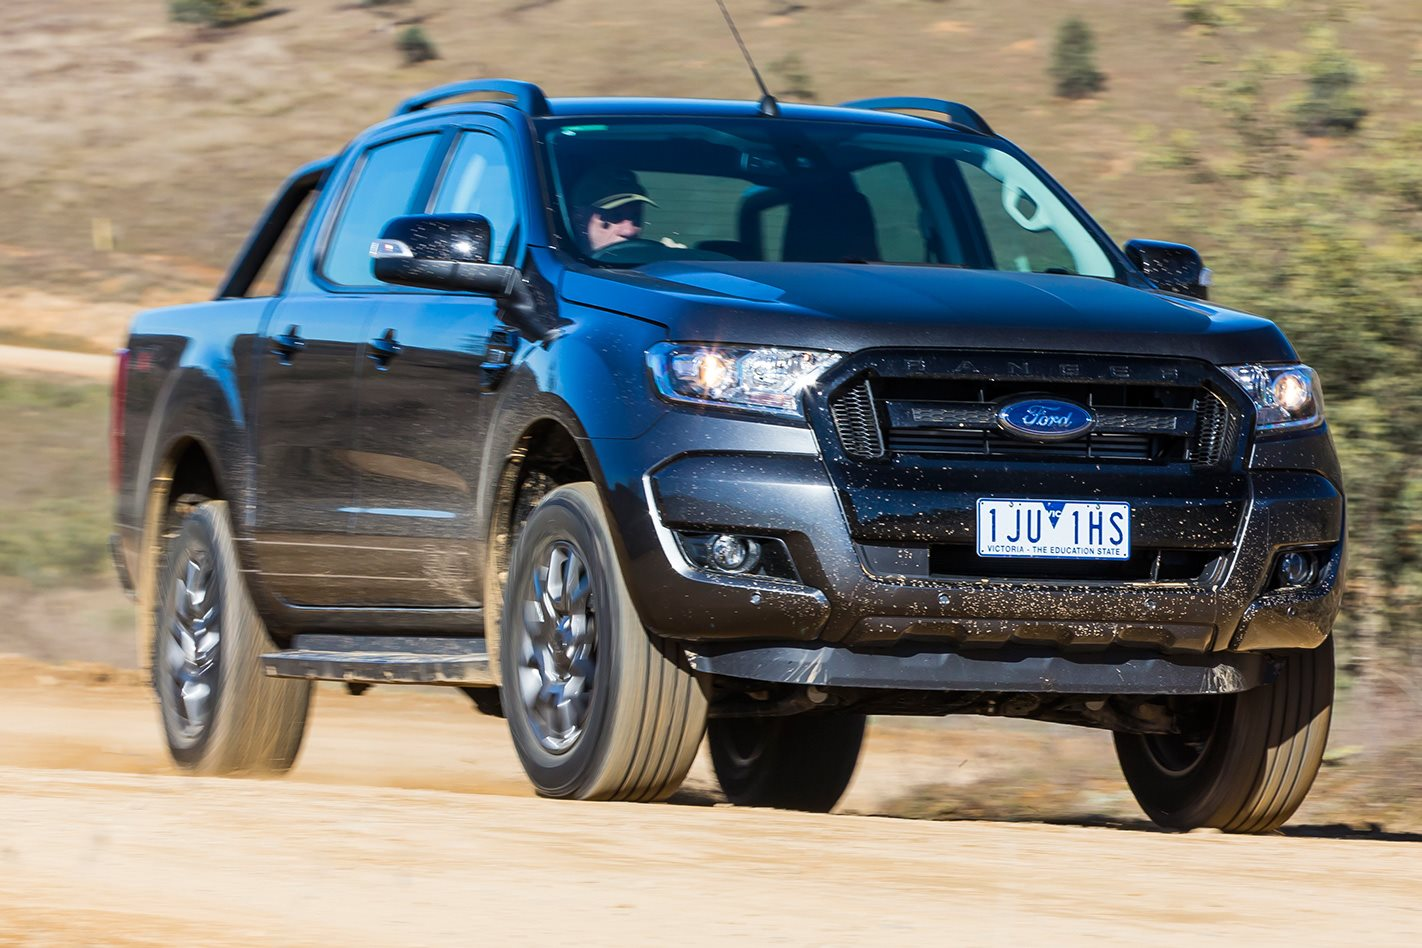 2017 toyota hilux trd vs 2017 ford ranger fx4 comparison. Black Bedroom Furniture Sets. Home Design Ideas